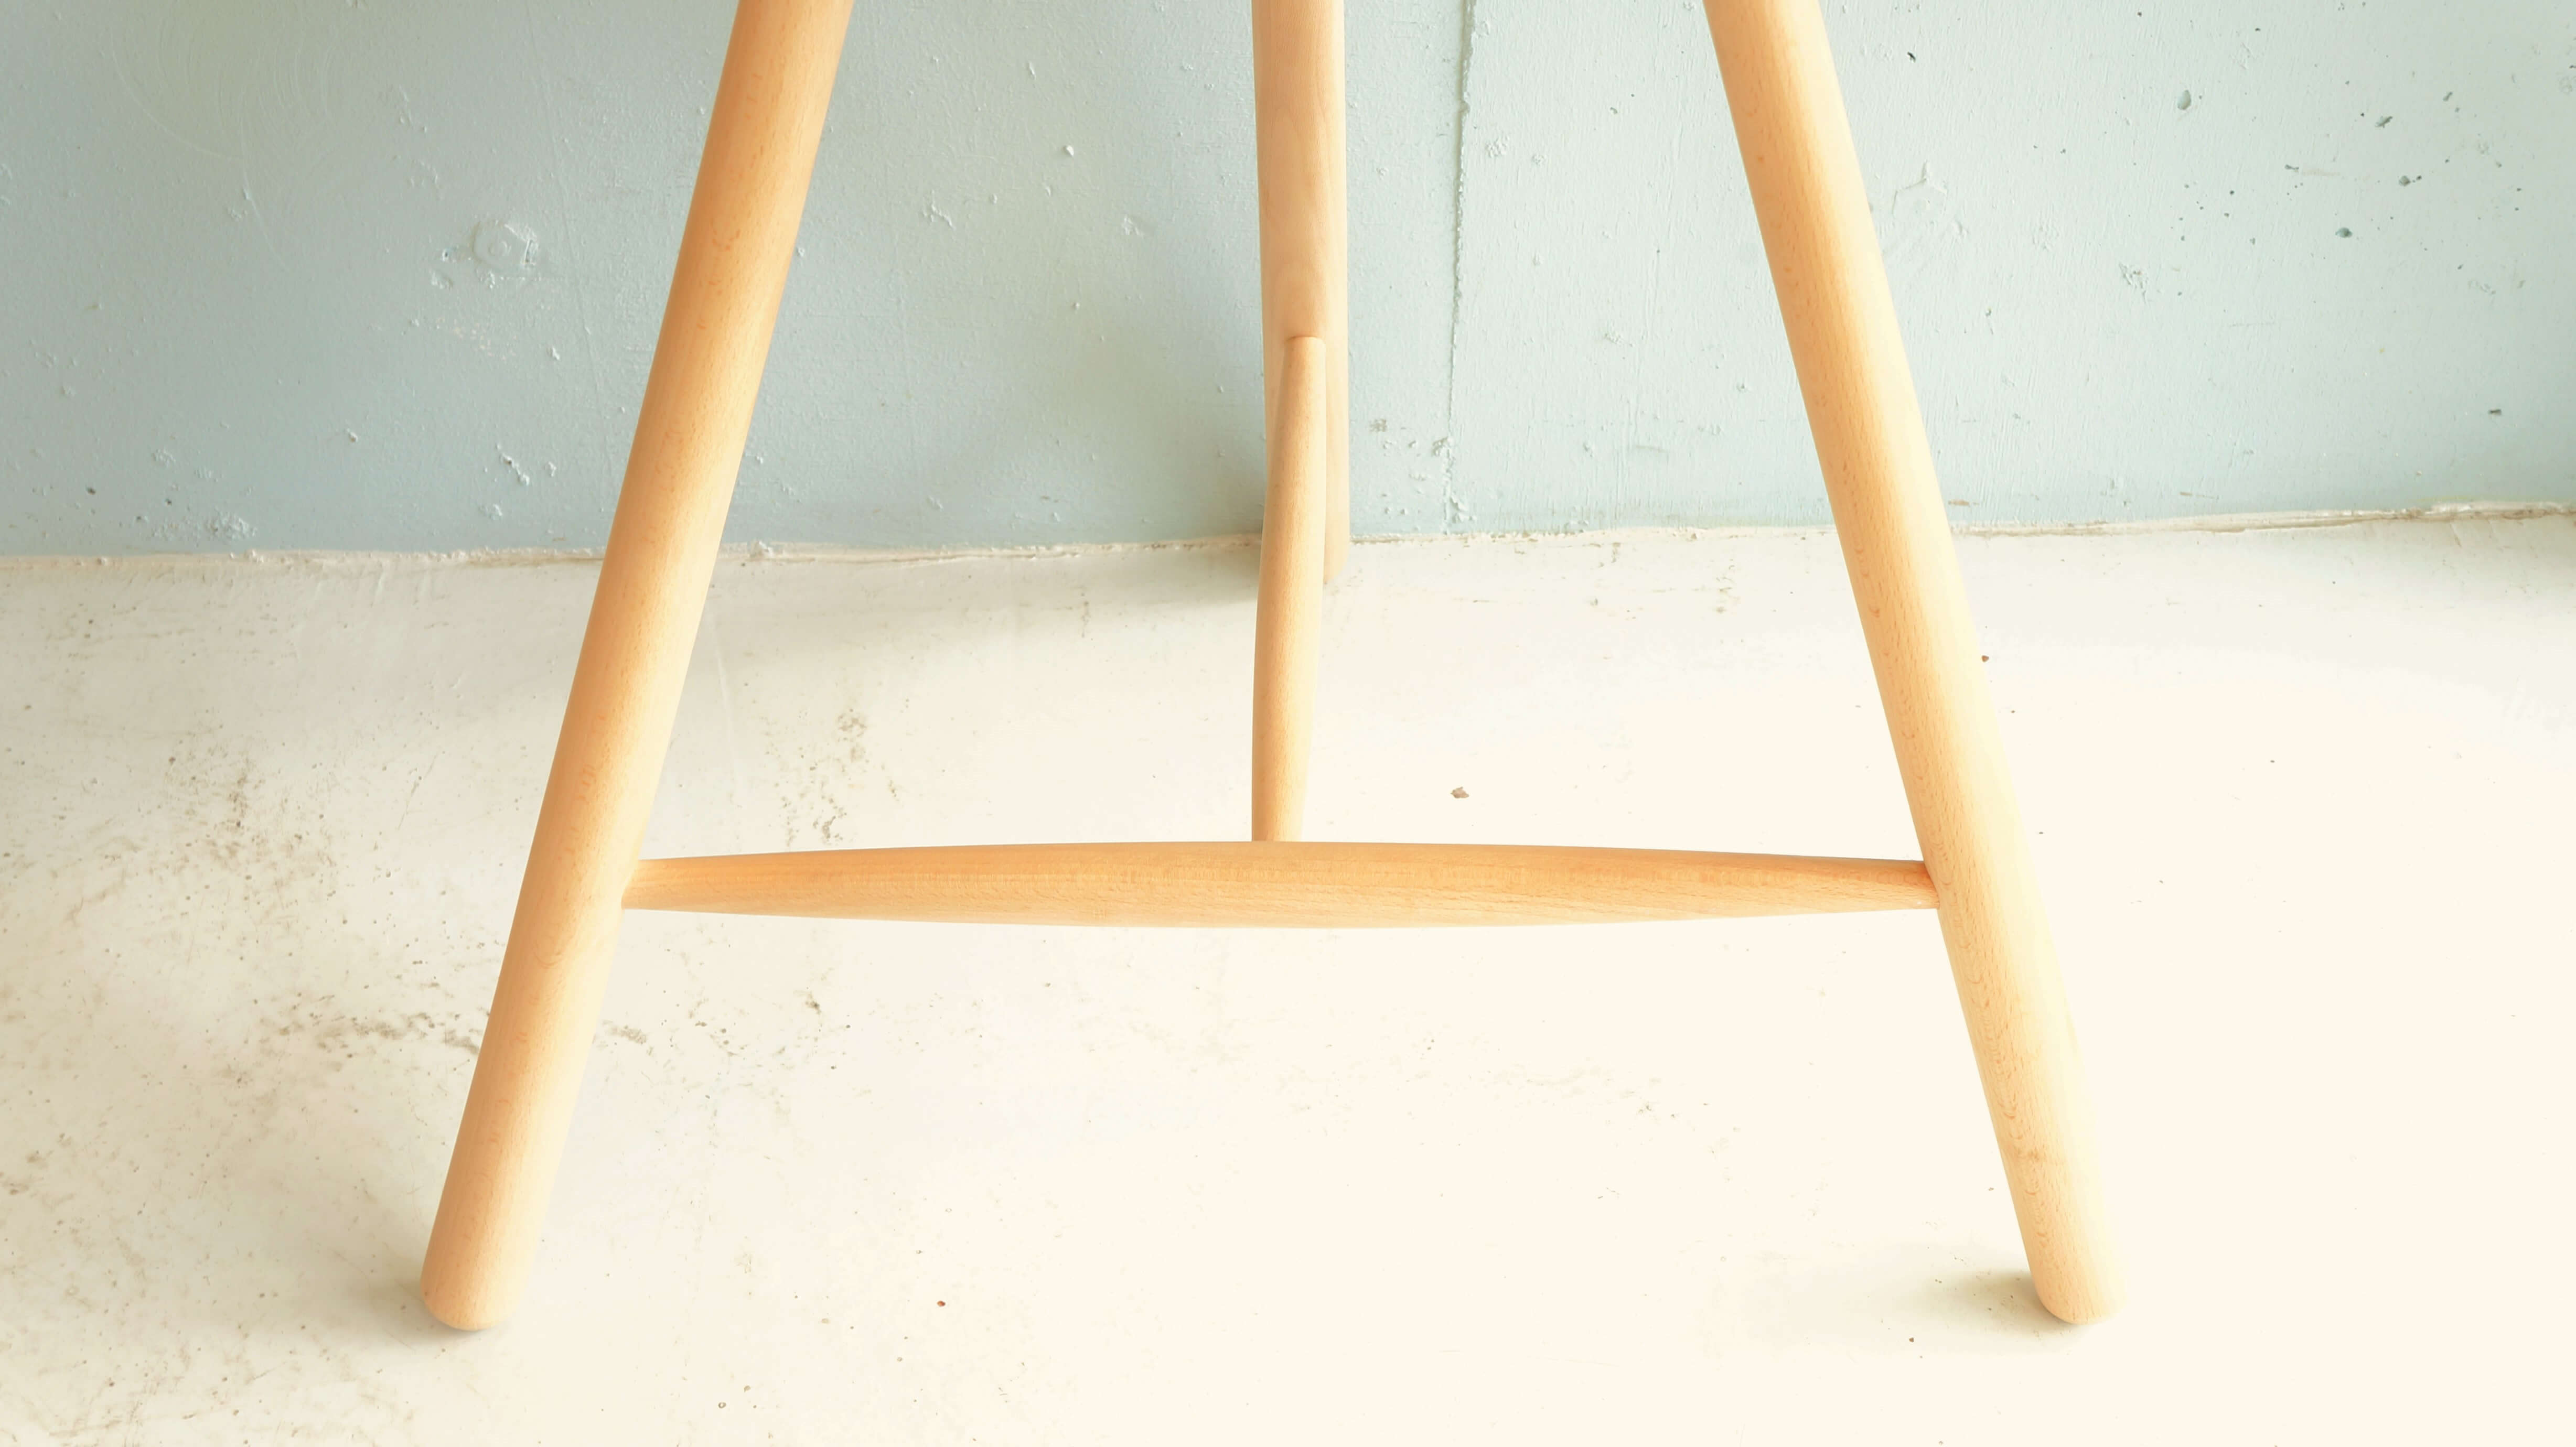 werner Shoemaker Chair stool made in Denmark/ワーナー シューメーカーチェア スツール デンマーク